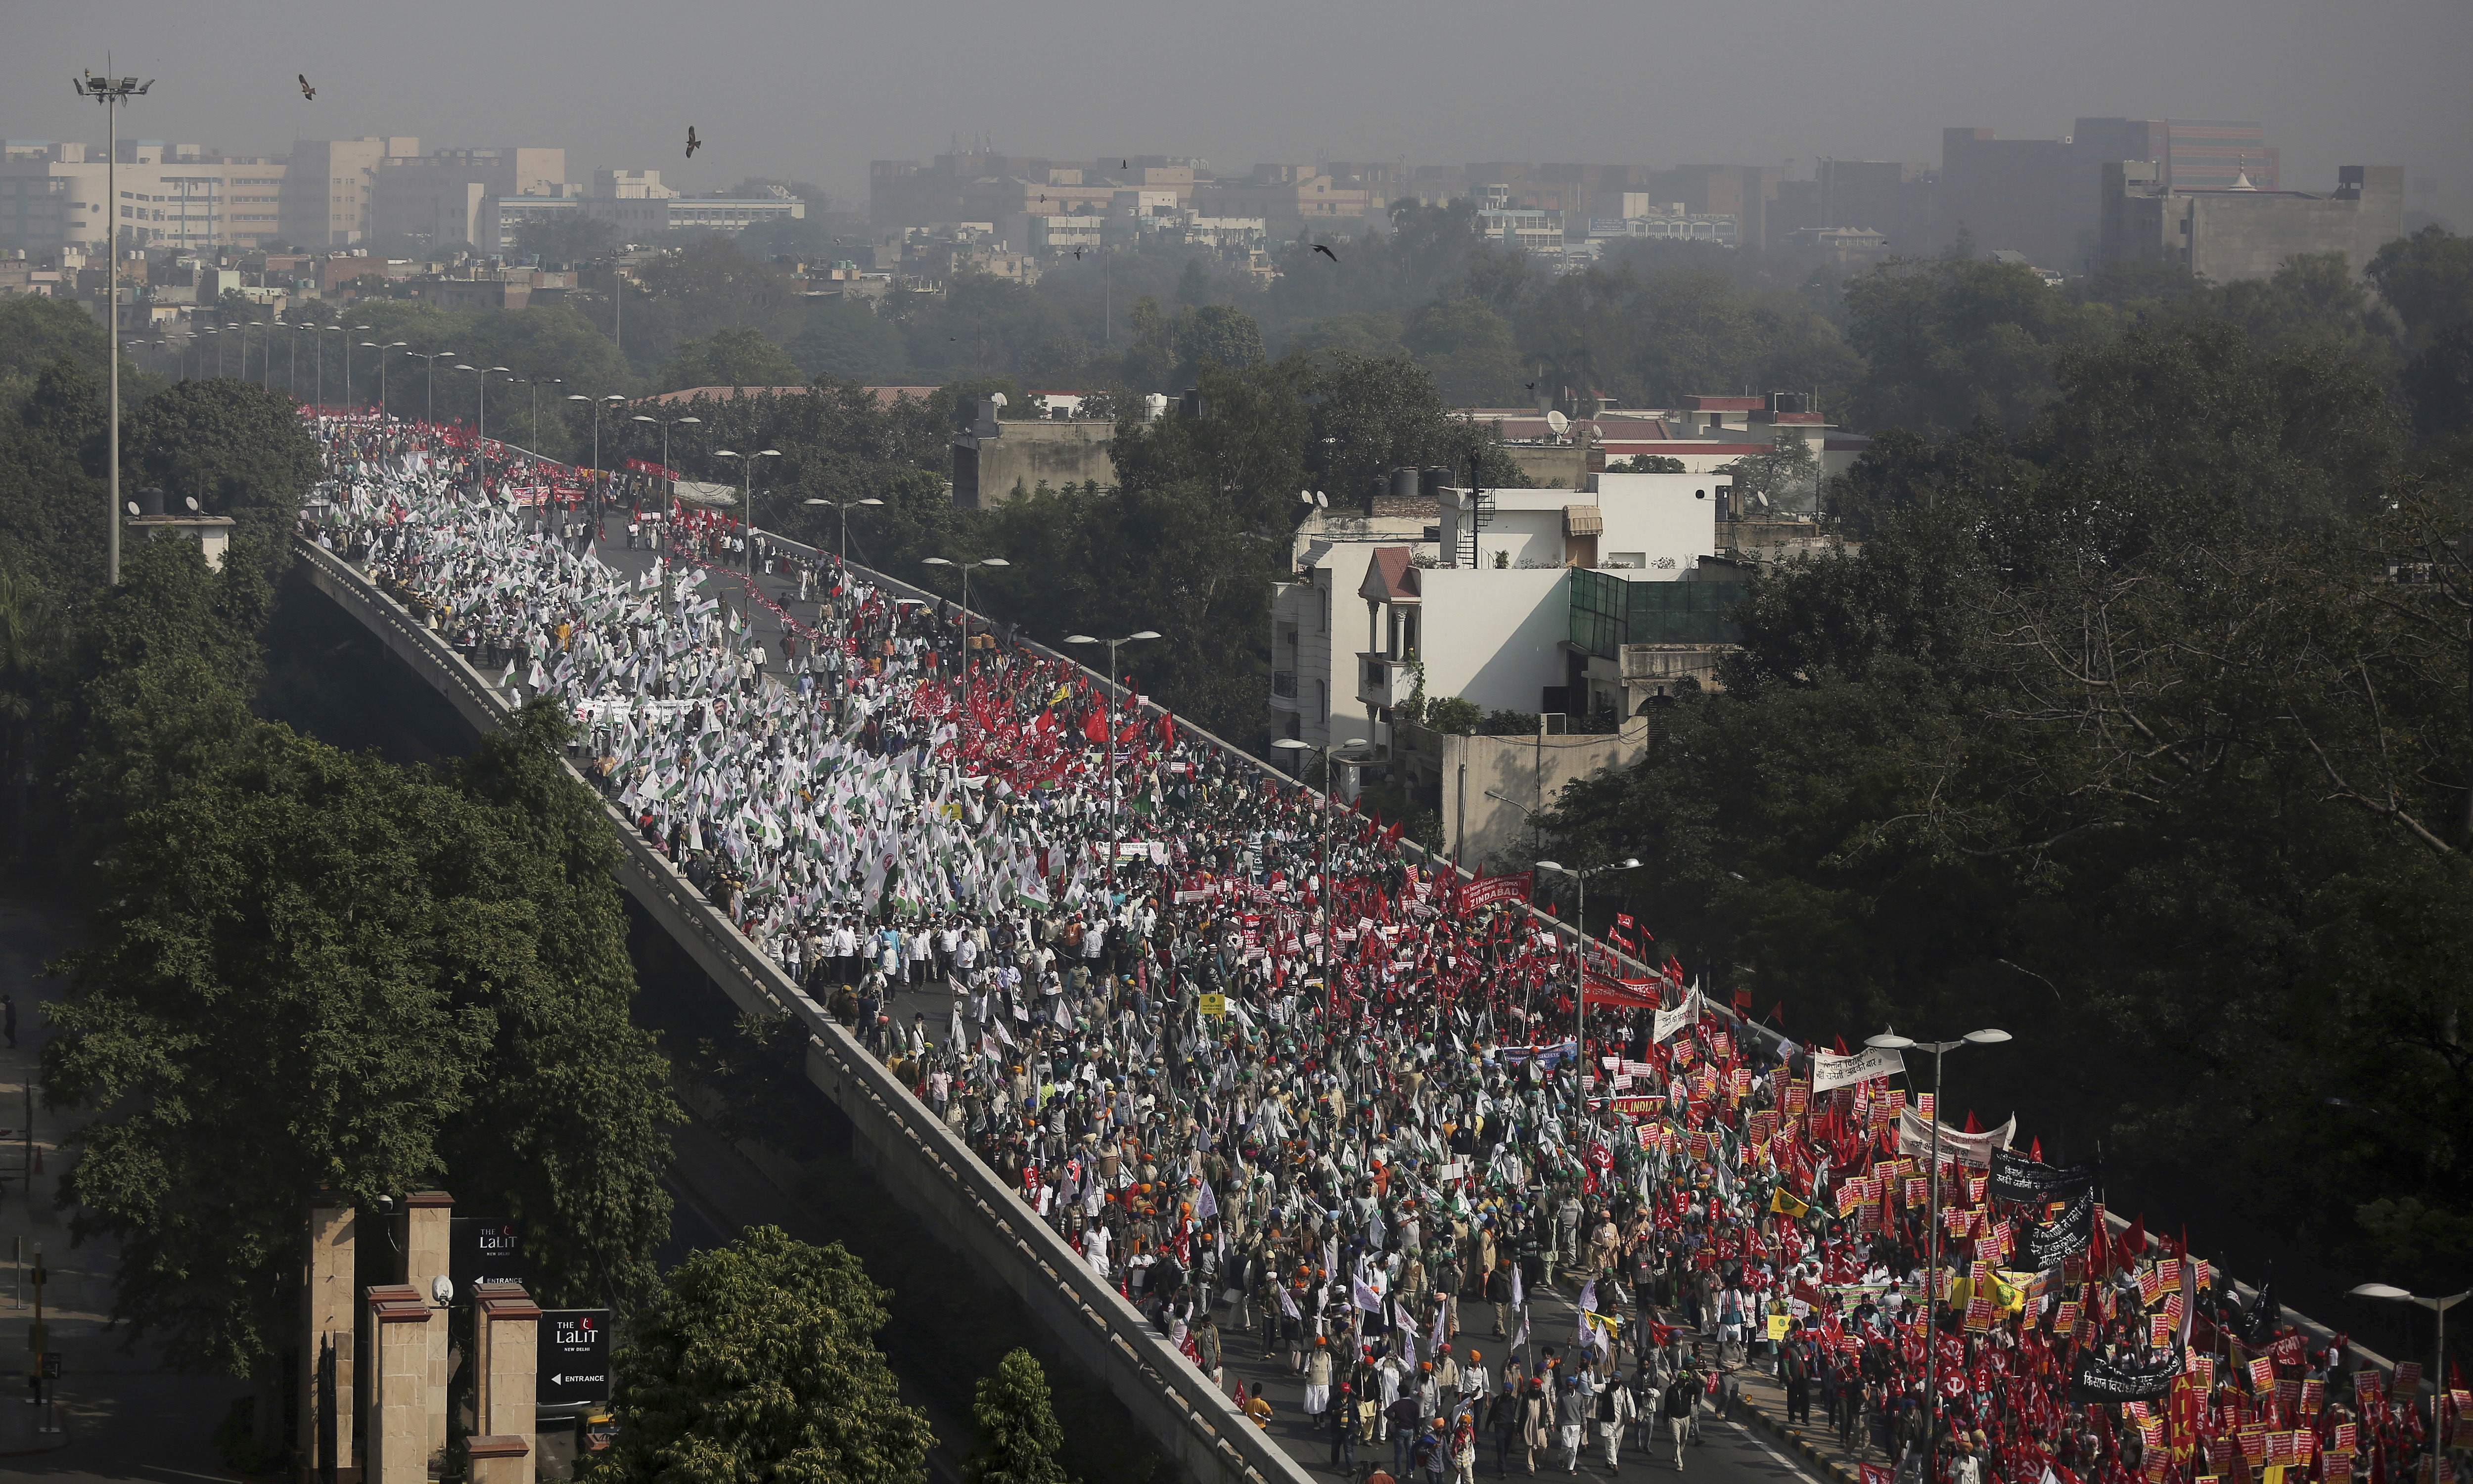 Thousands of farmers march towards Parliament during a protest rally in New Delhi, on Friday, November 30, 2018, demanding higher prices for their produce and a government waiver on their farm loans to alleviate hardships